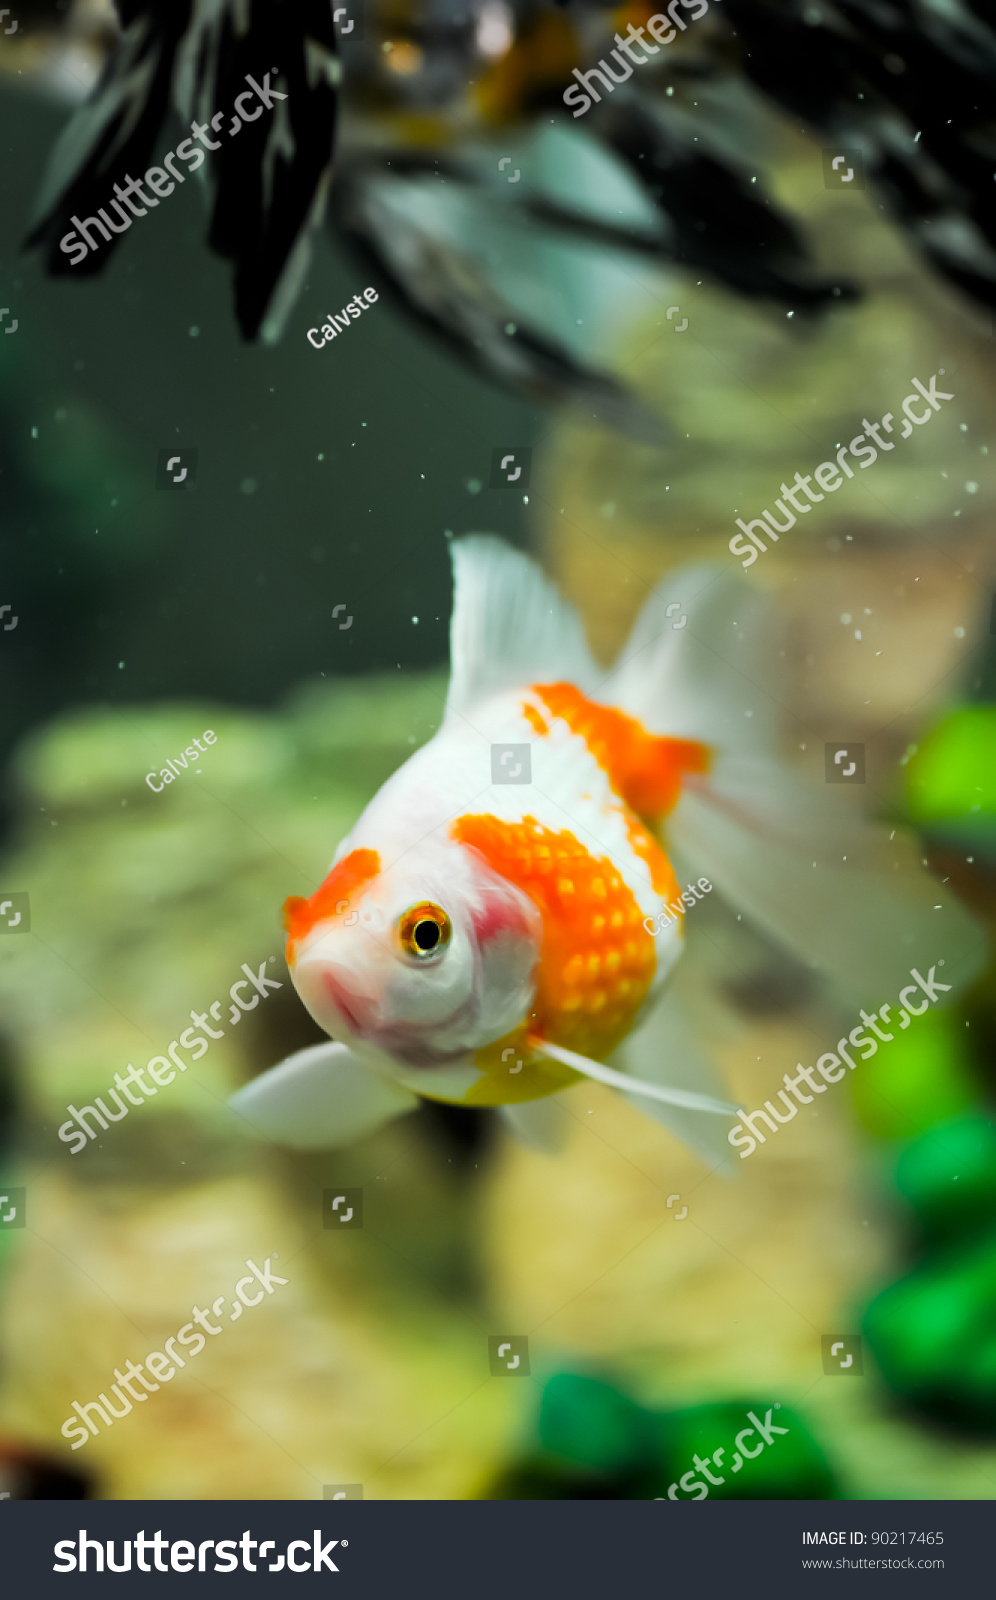 how to cycle a fish tank with goldfish